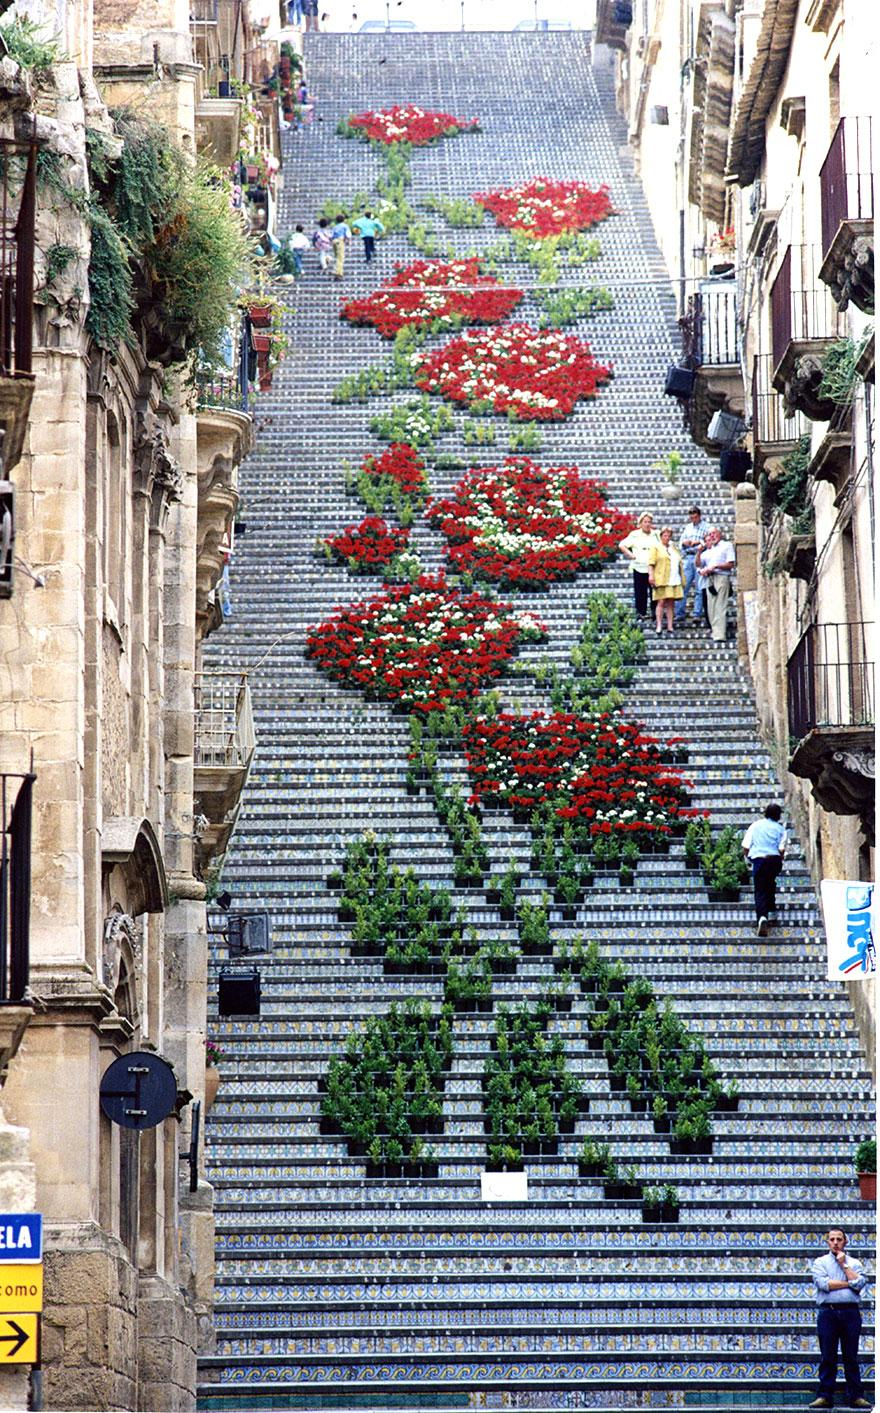 image: comune.caltagirone.ct.it